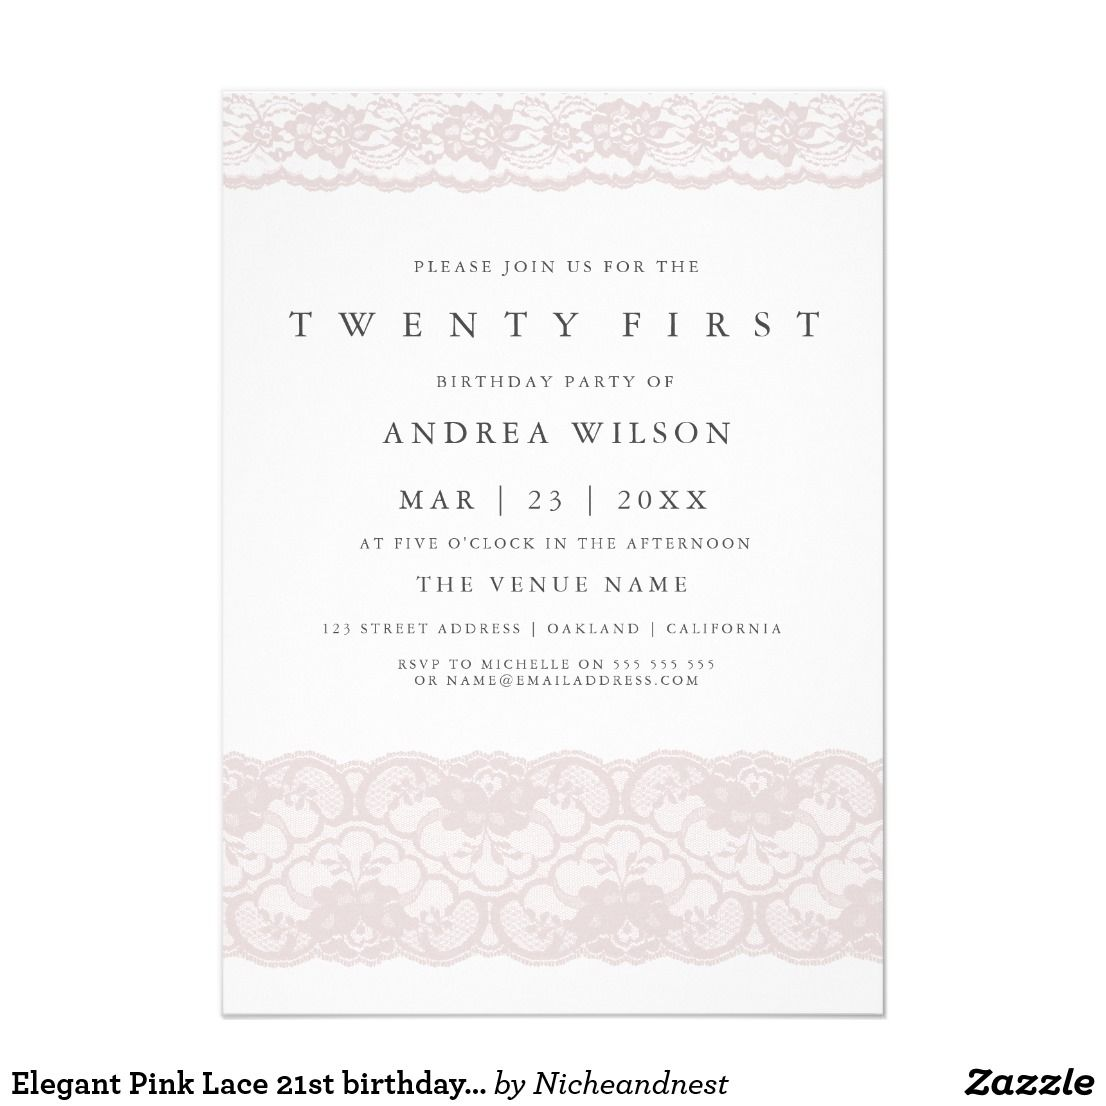 Elegant Pink Lace 21st birthday Party Invite | 21st Birthday ...